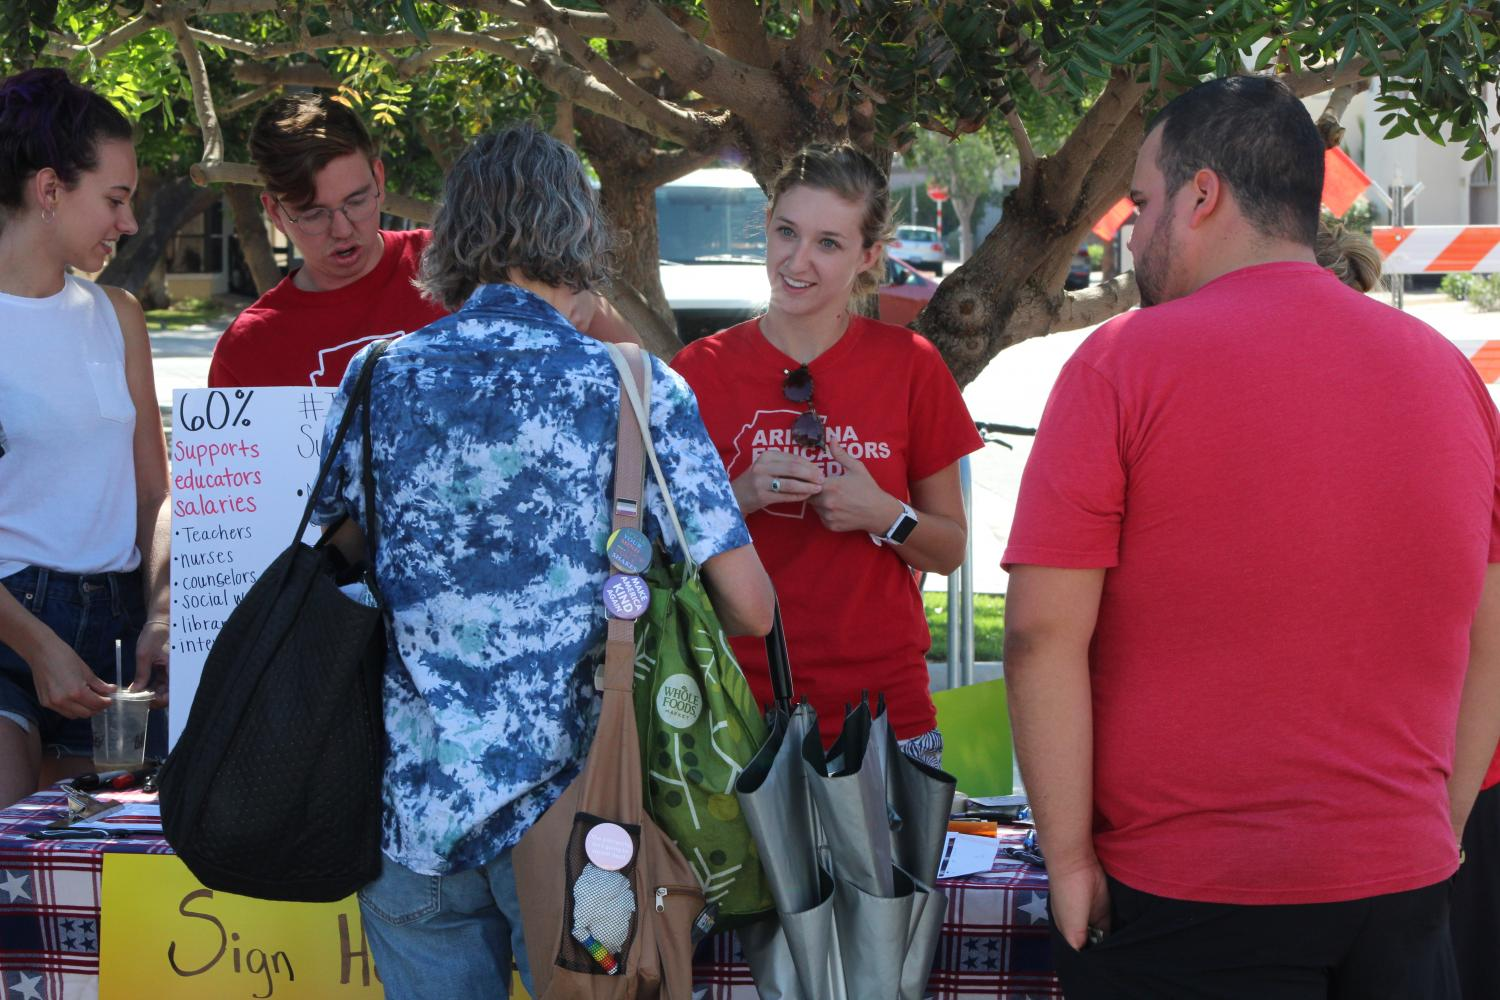 Teachers and advocates for more education funding set up booths across the Valley Saturday.  They were collecting signatures to get the Invest in Education Act on the ballot in November.